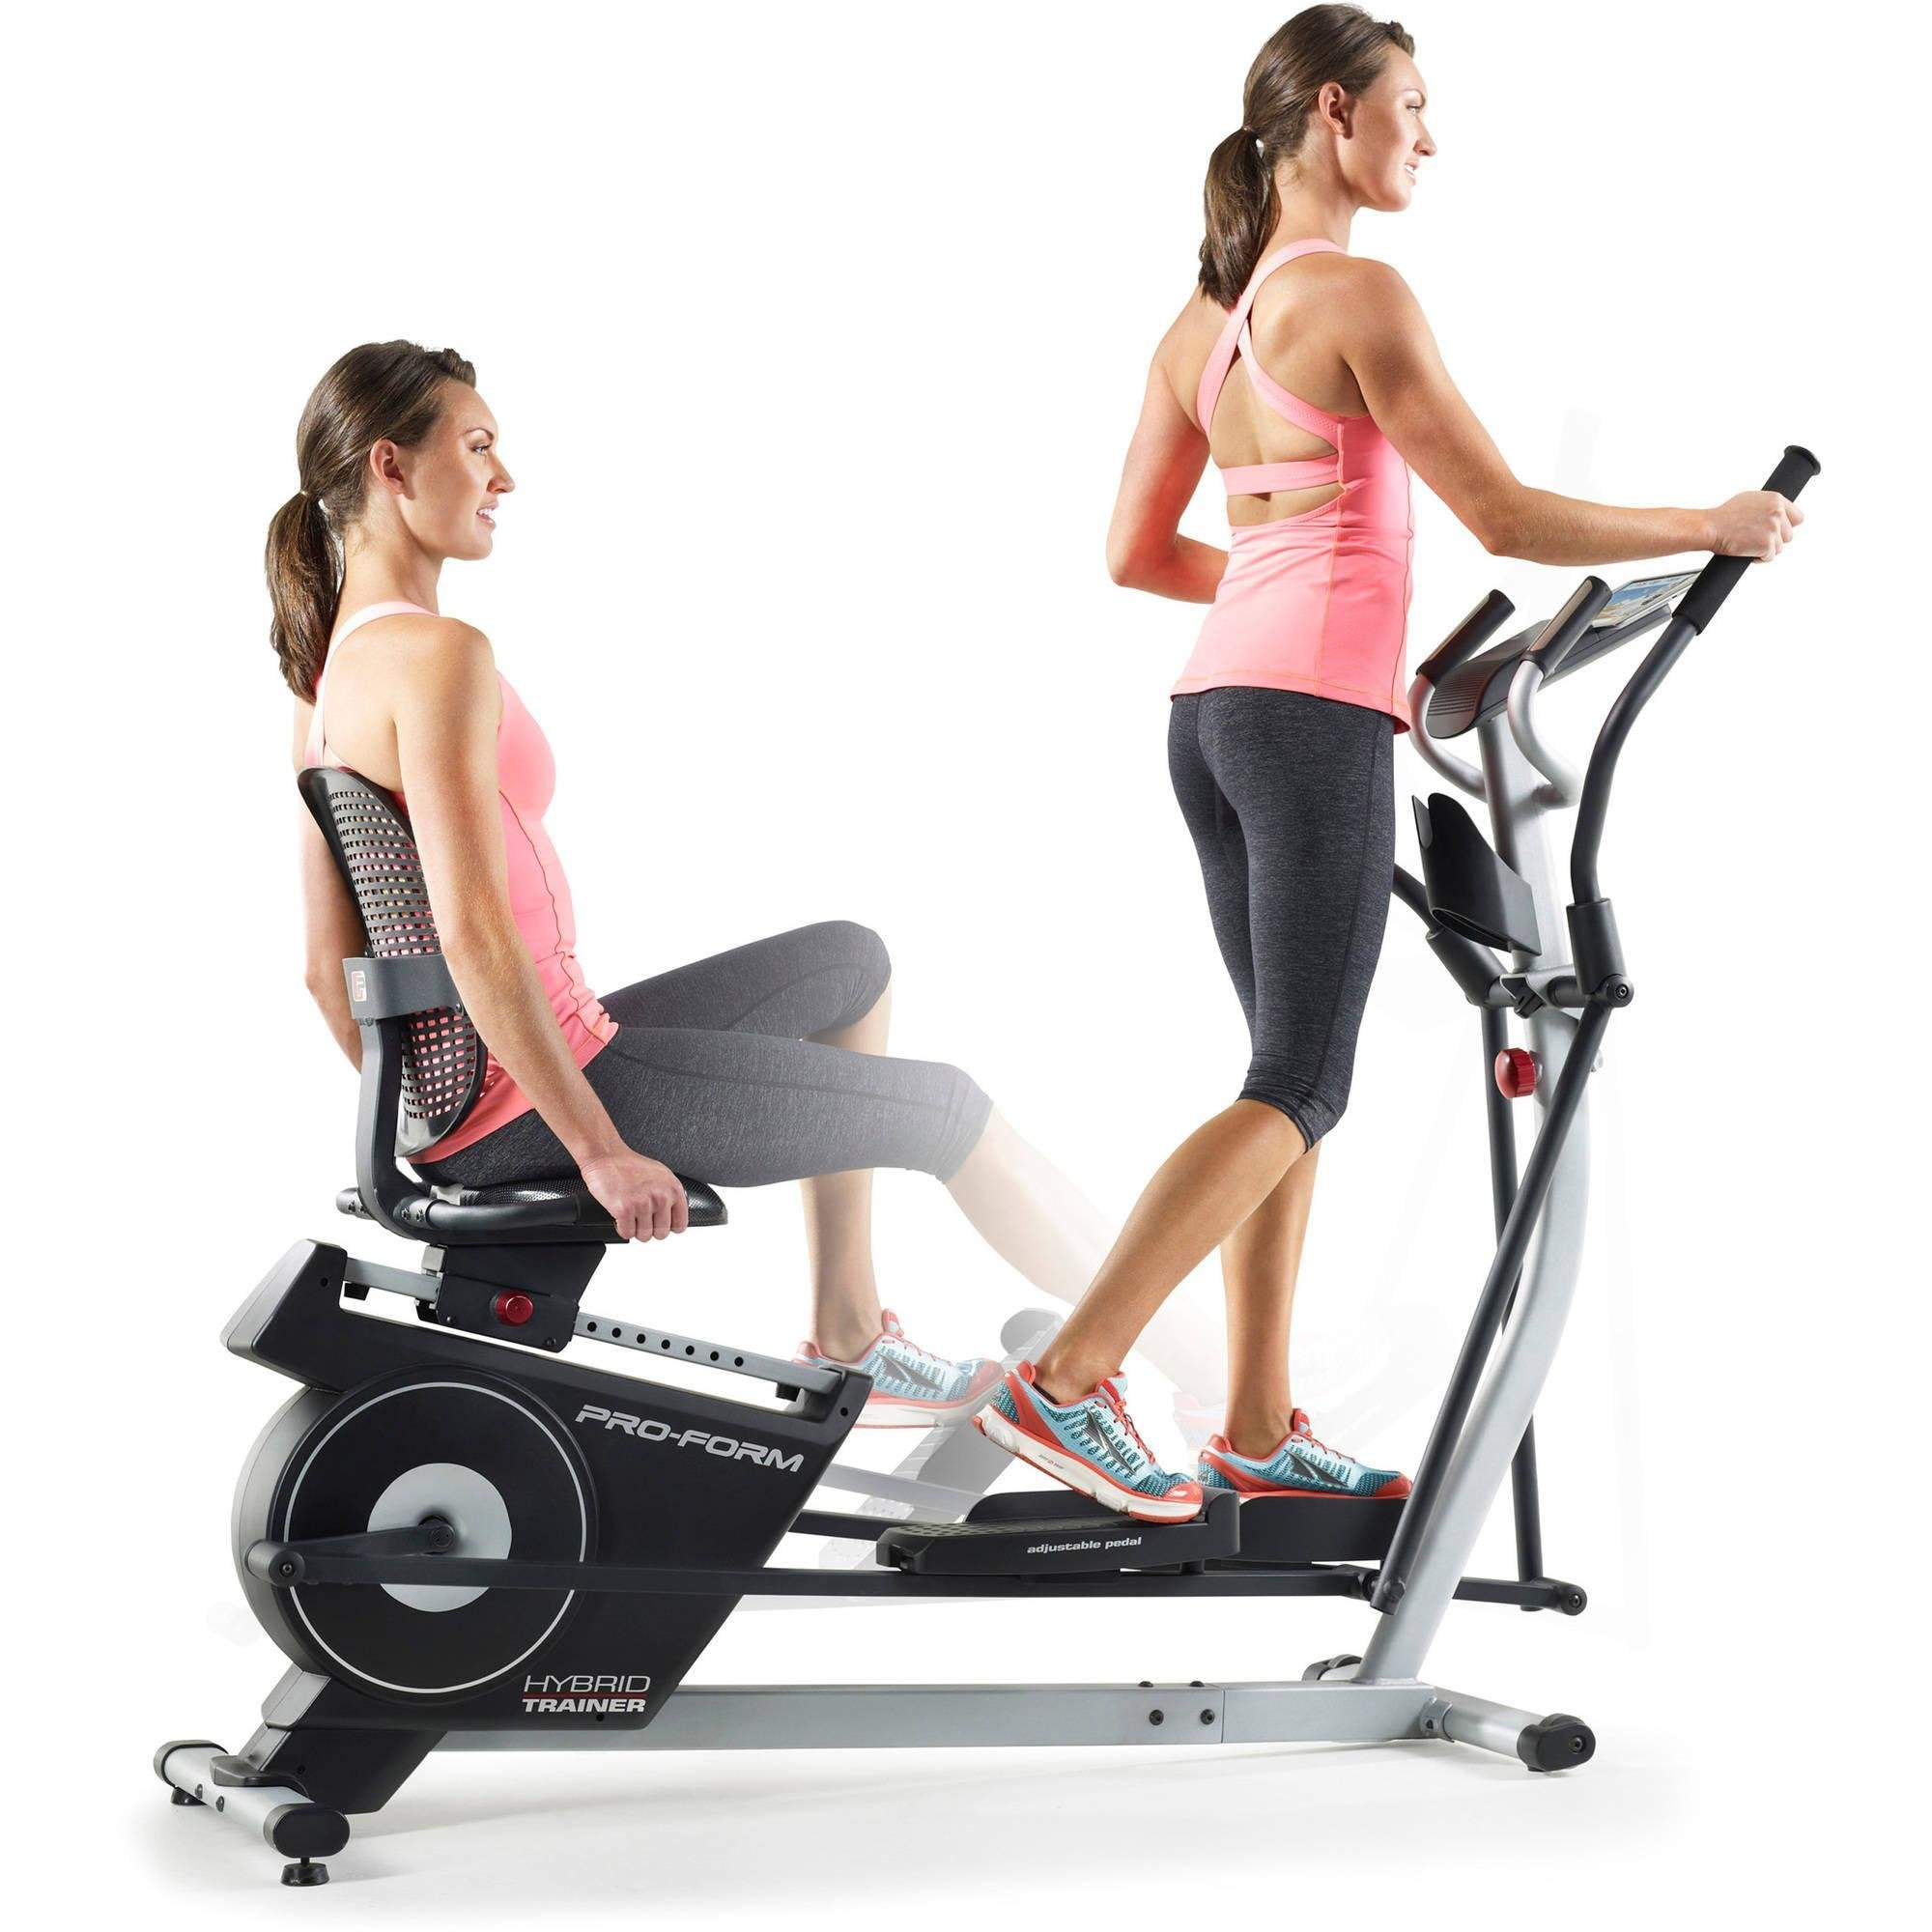 2-in-1 Double Elliptical and Recumbent Bike, Black by ProForm (Image #1)